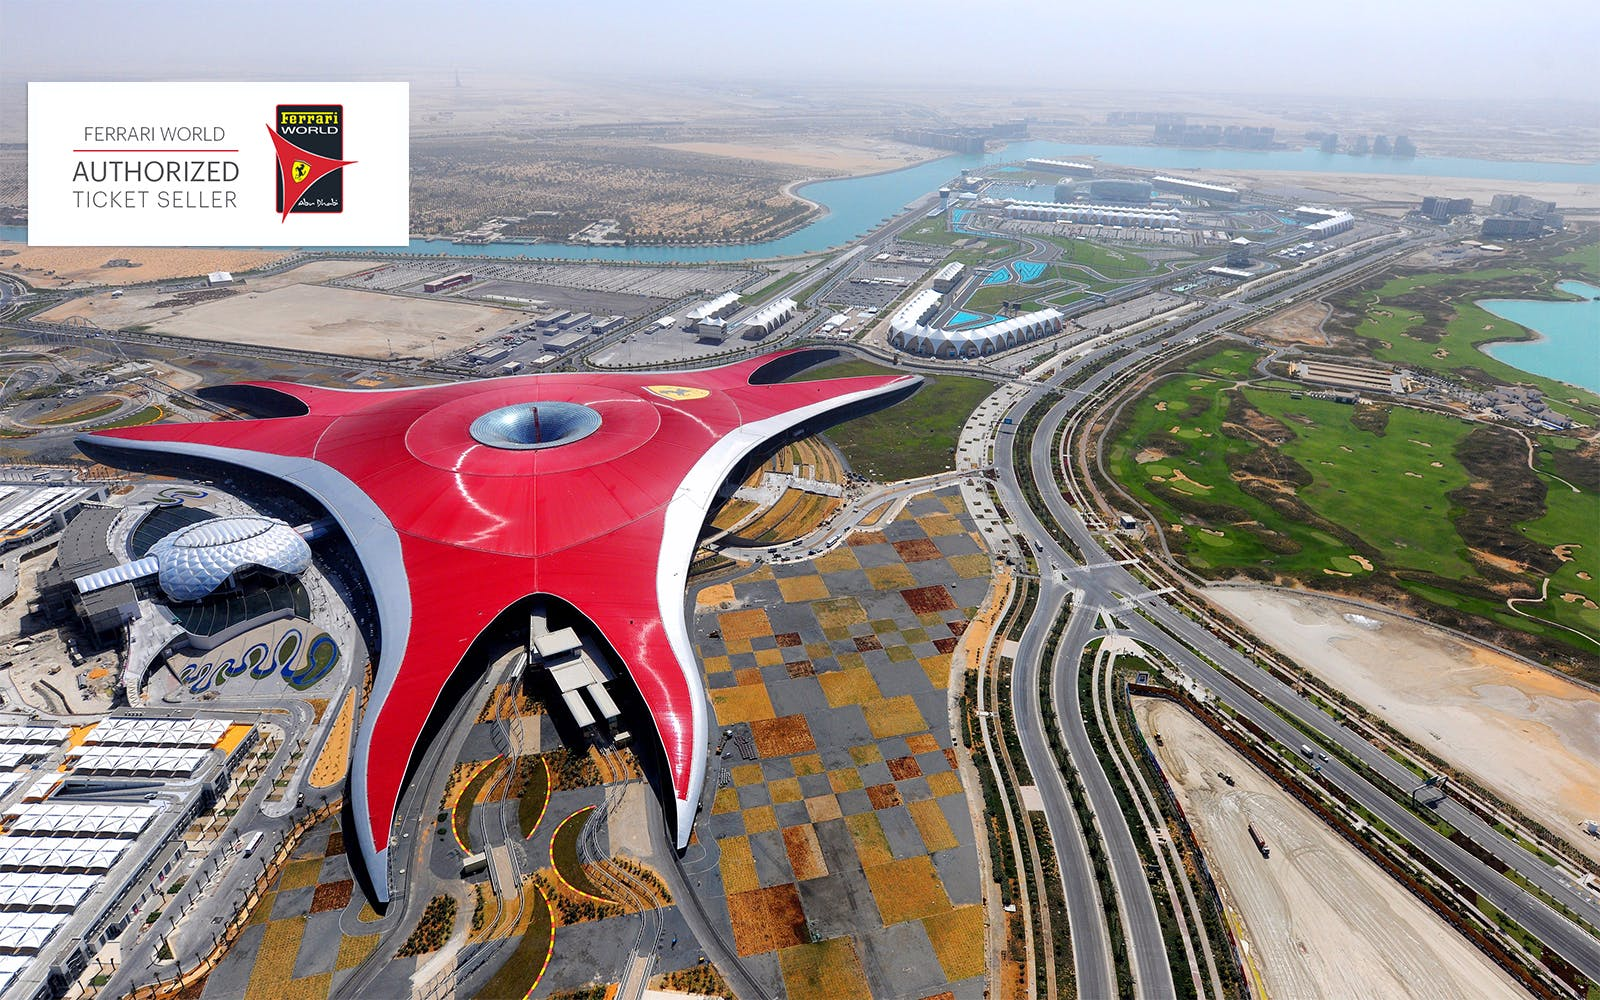 Ferrari World Bronze Pass